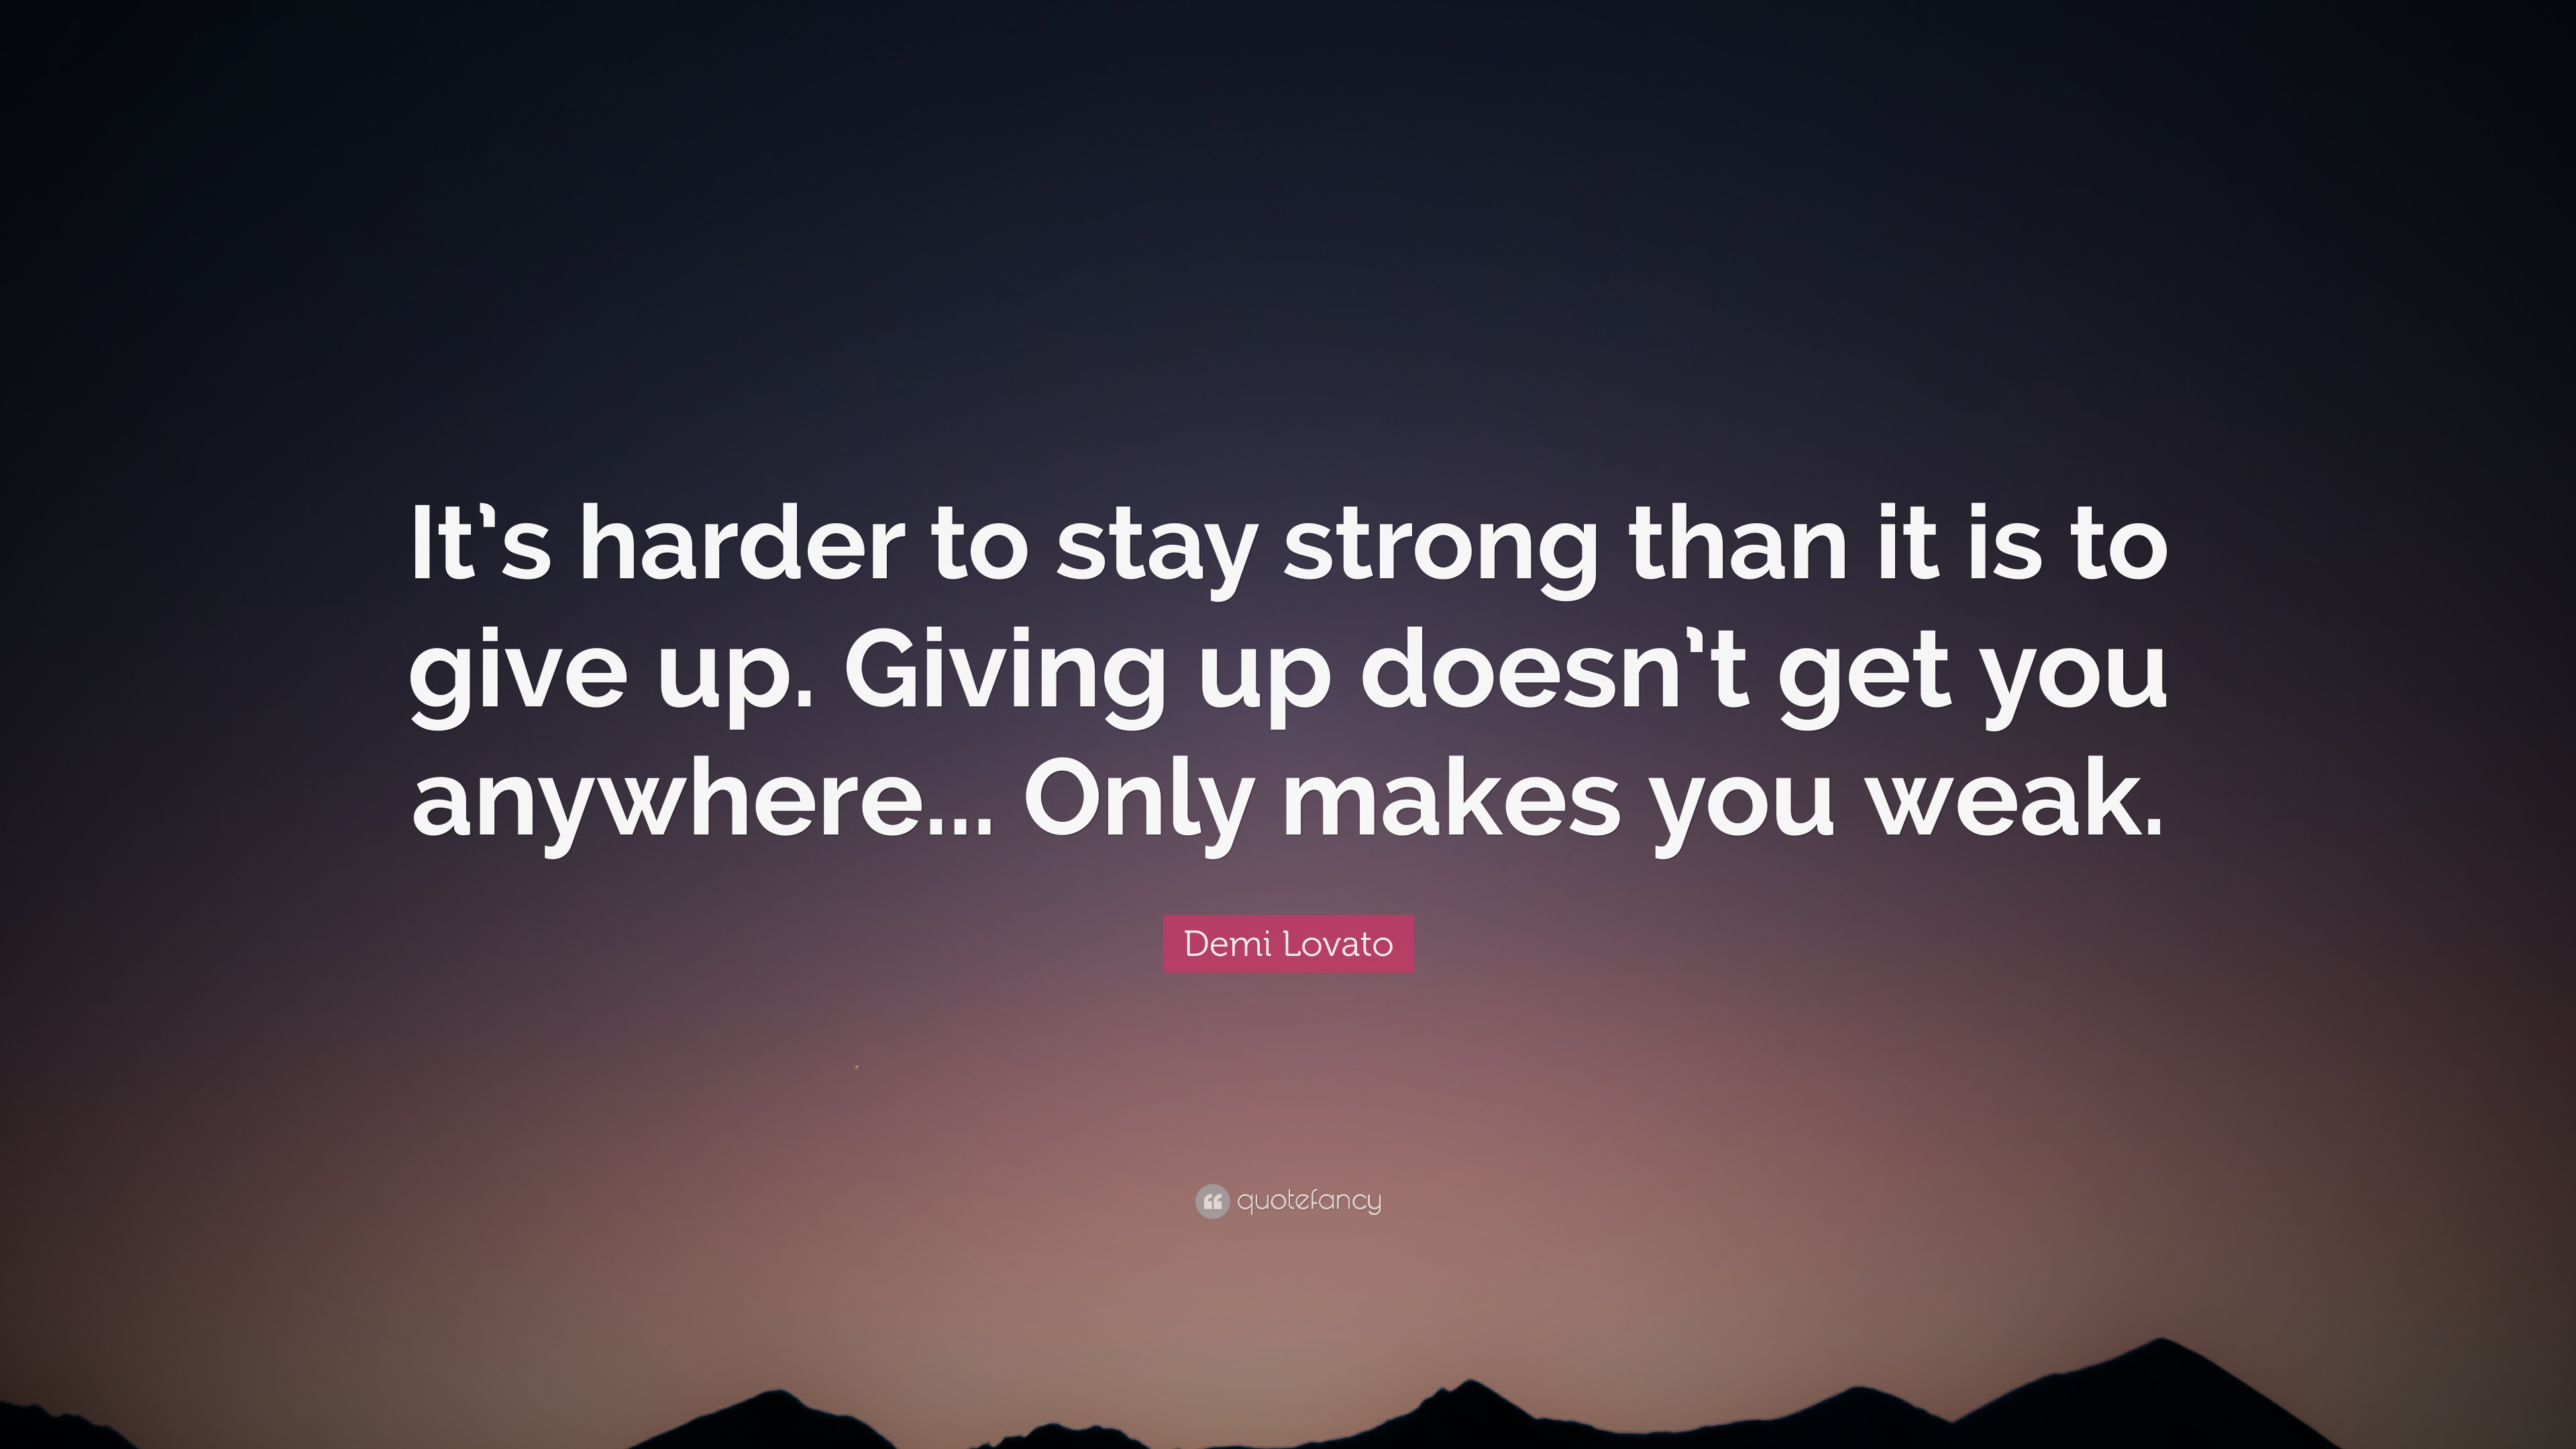 Demi lovato quote its harder to stay strong than it is to give demi lovato quote its harder to stay strong than it is to give up voltagebd